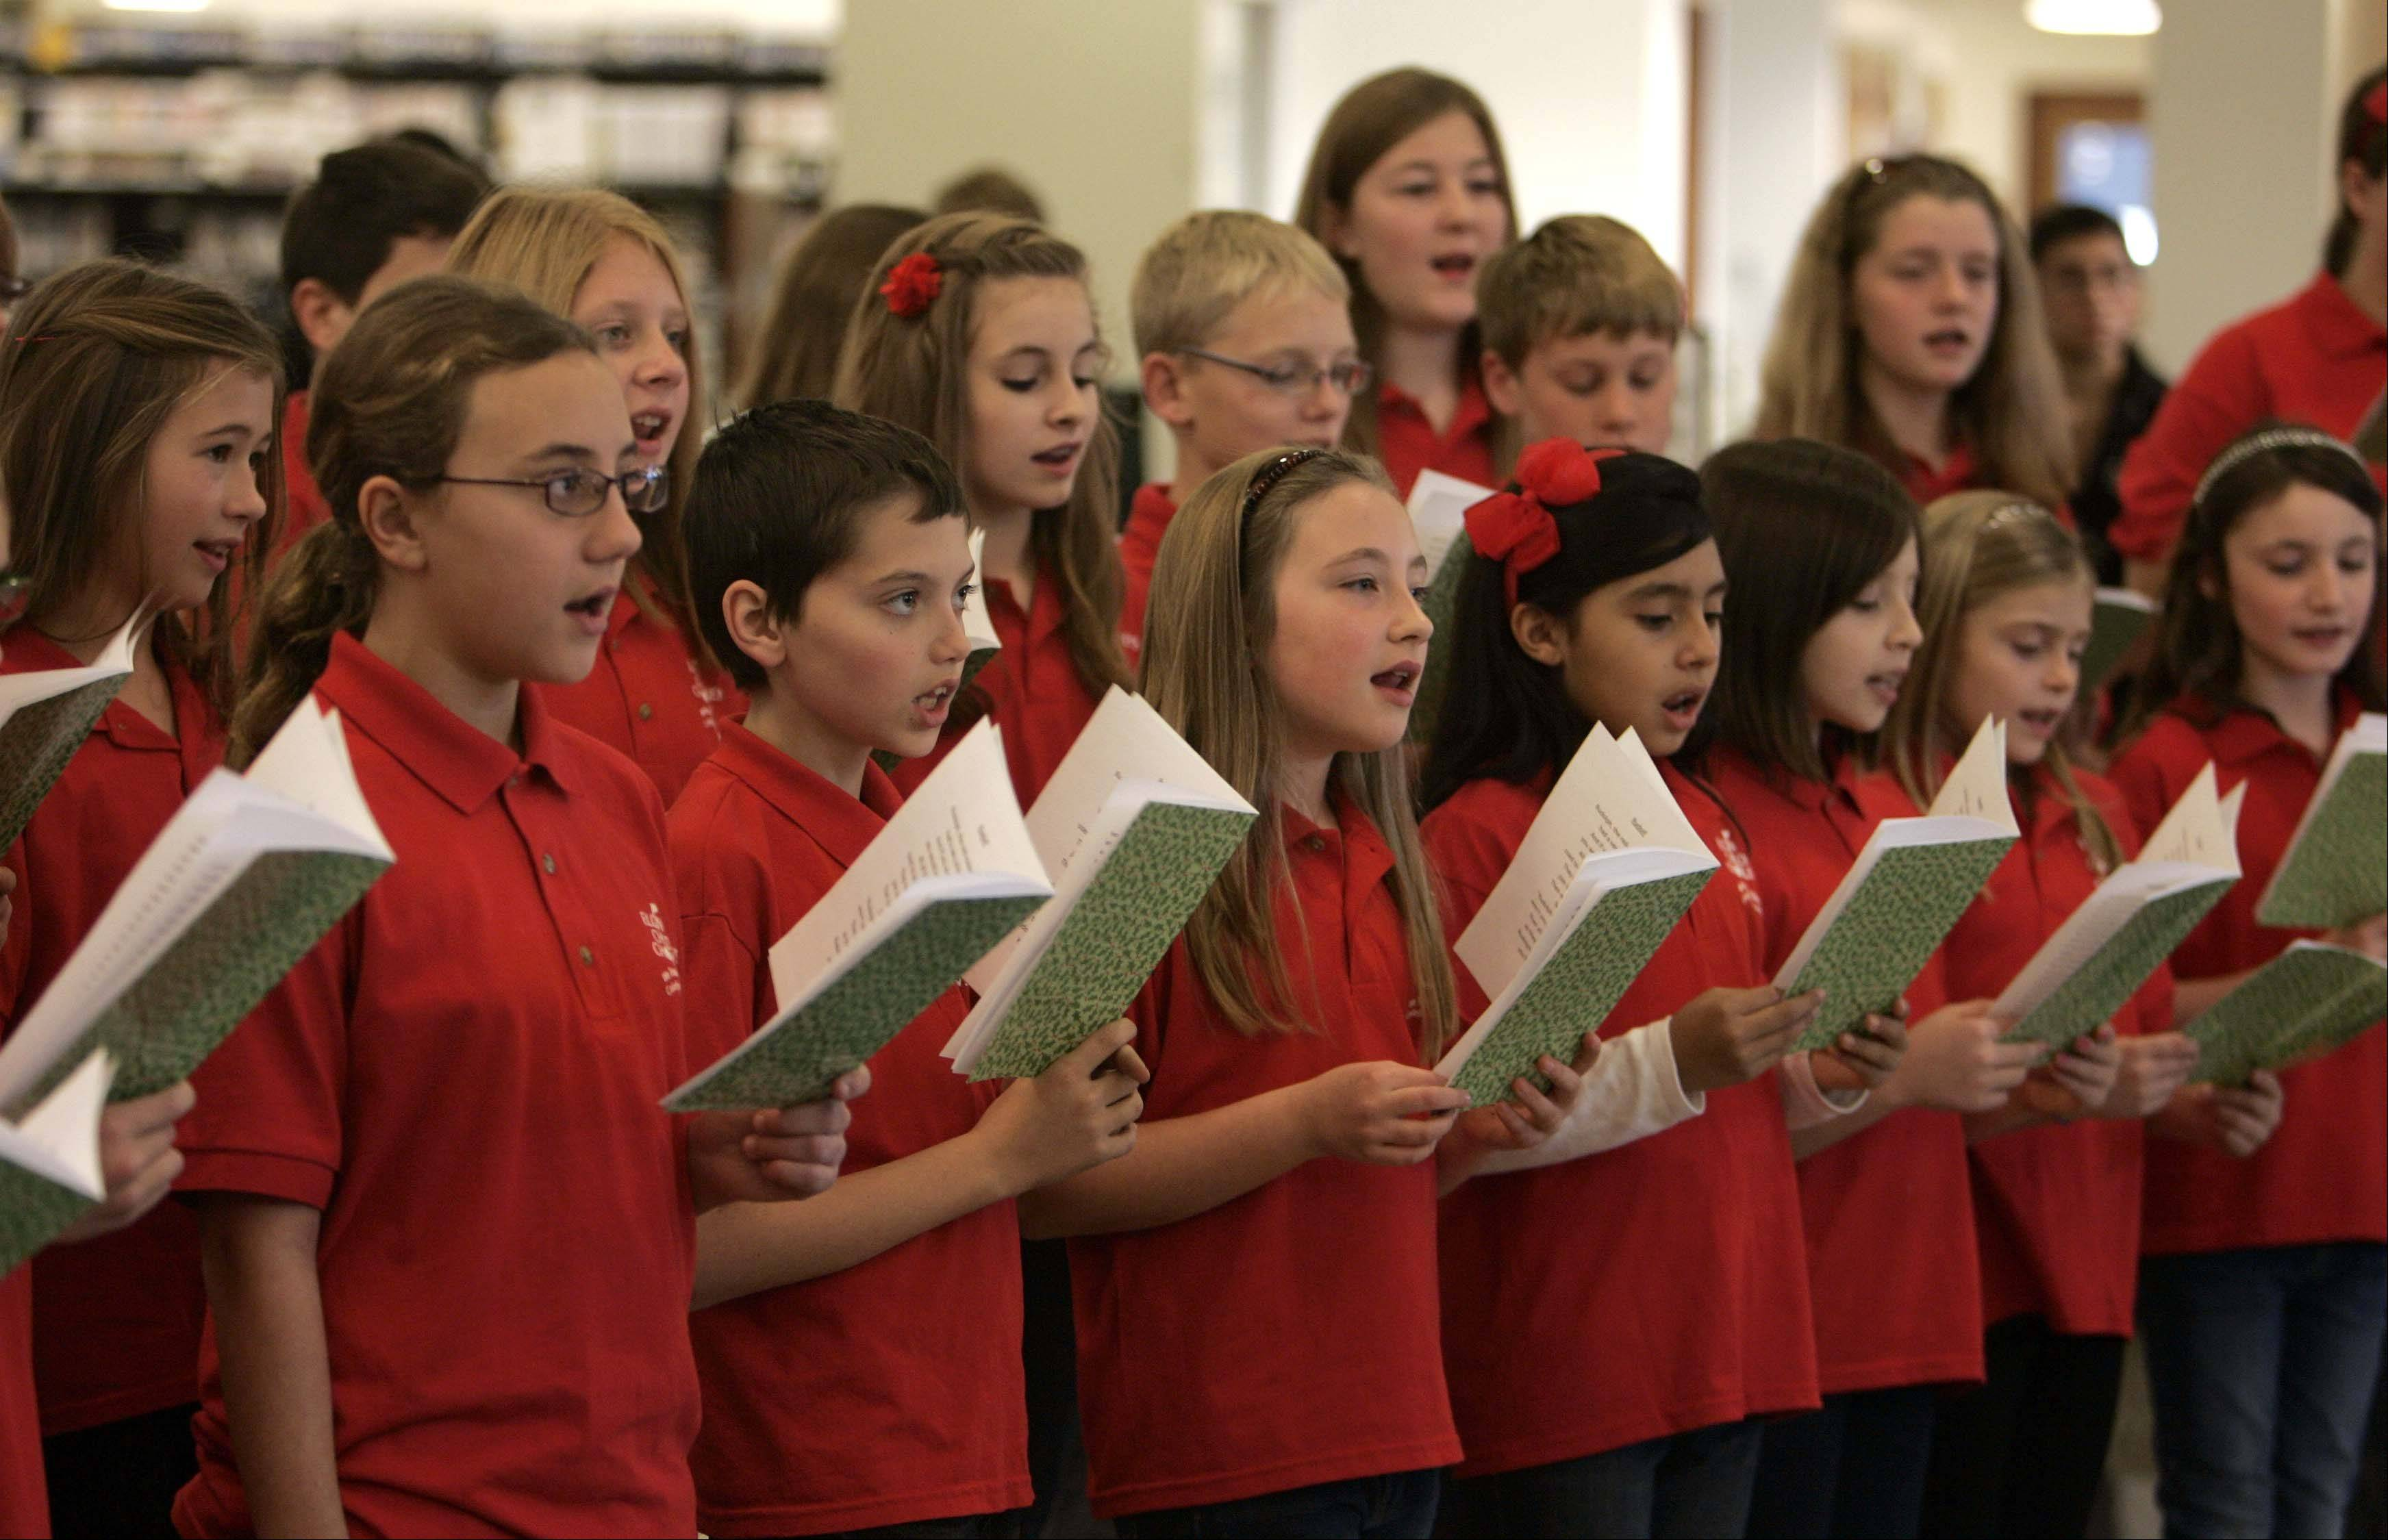 Brian Hill/bhill@dailyherald.comThe Elgin Children's Chorus performs during the Elgin Home for the Holidays, event Saturday at the Gail Borden Public Library in Elgin.